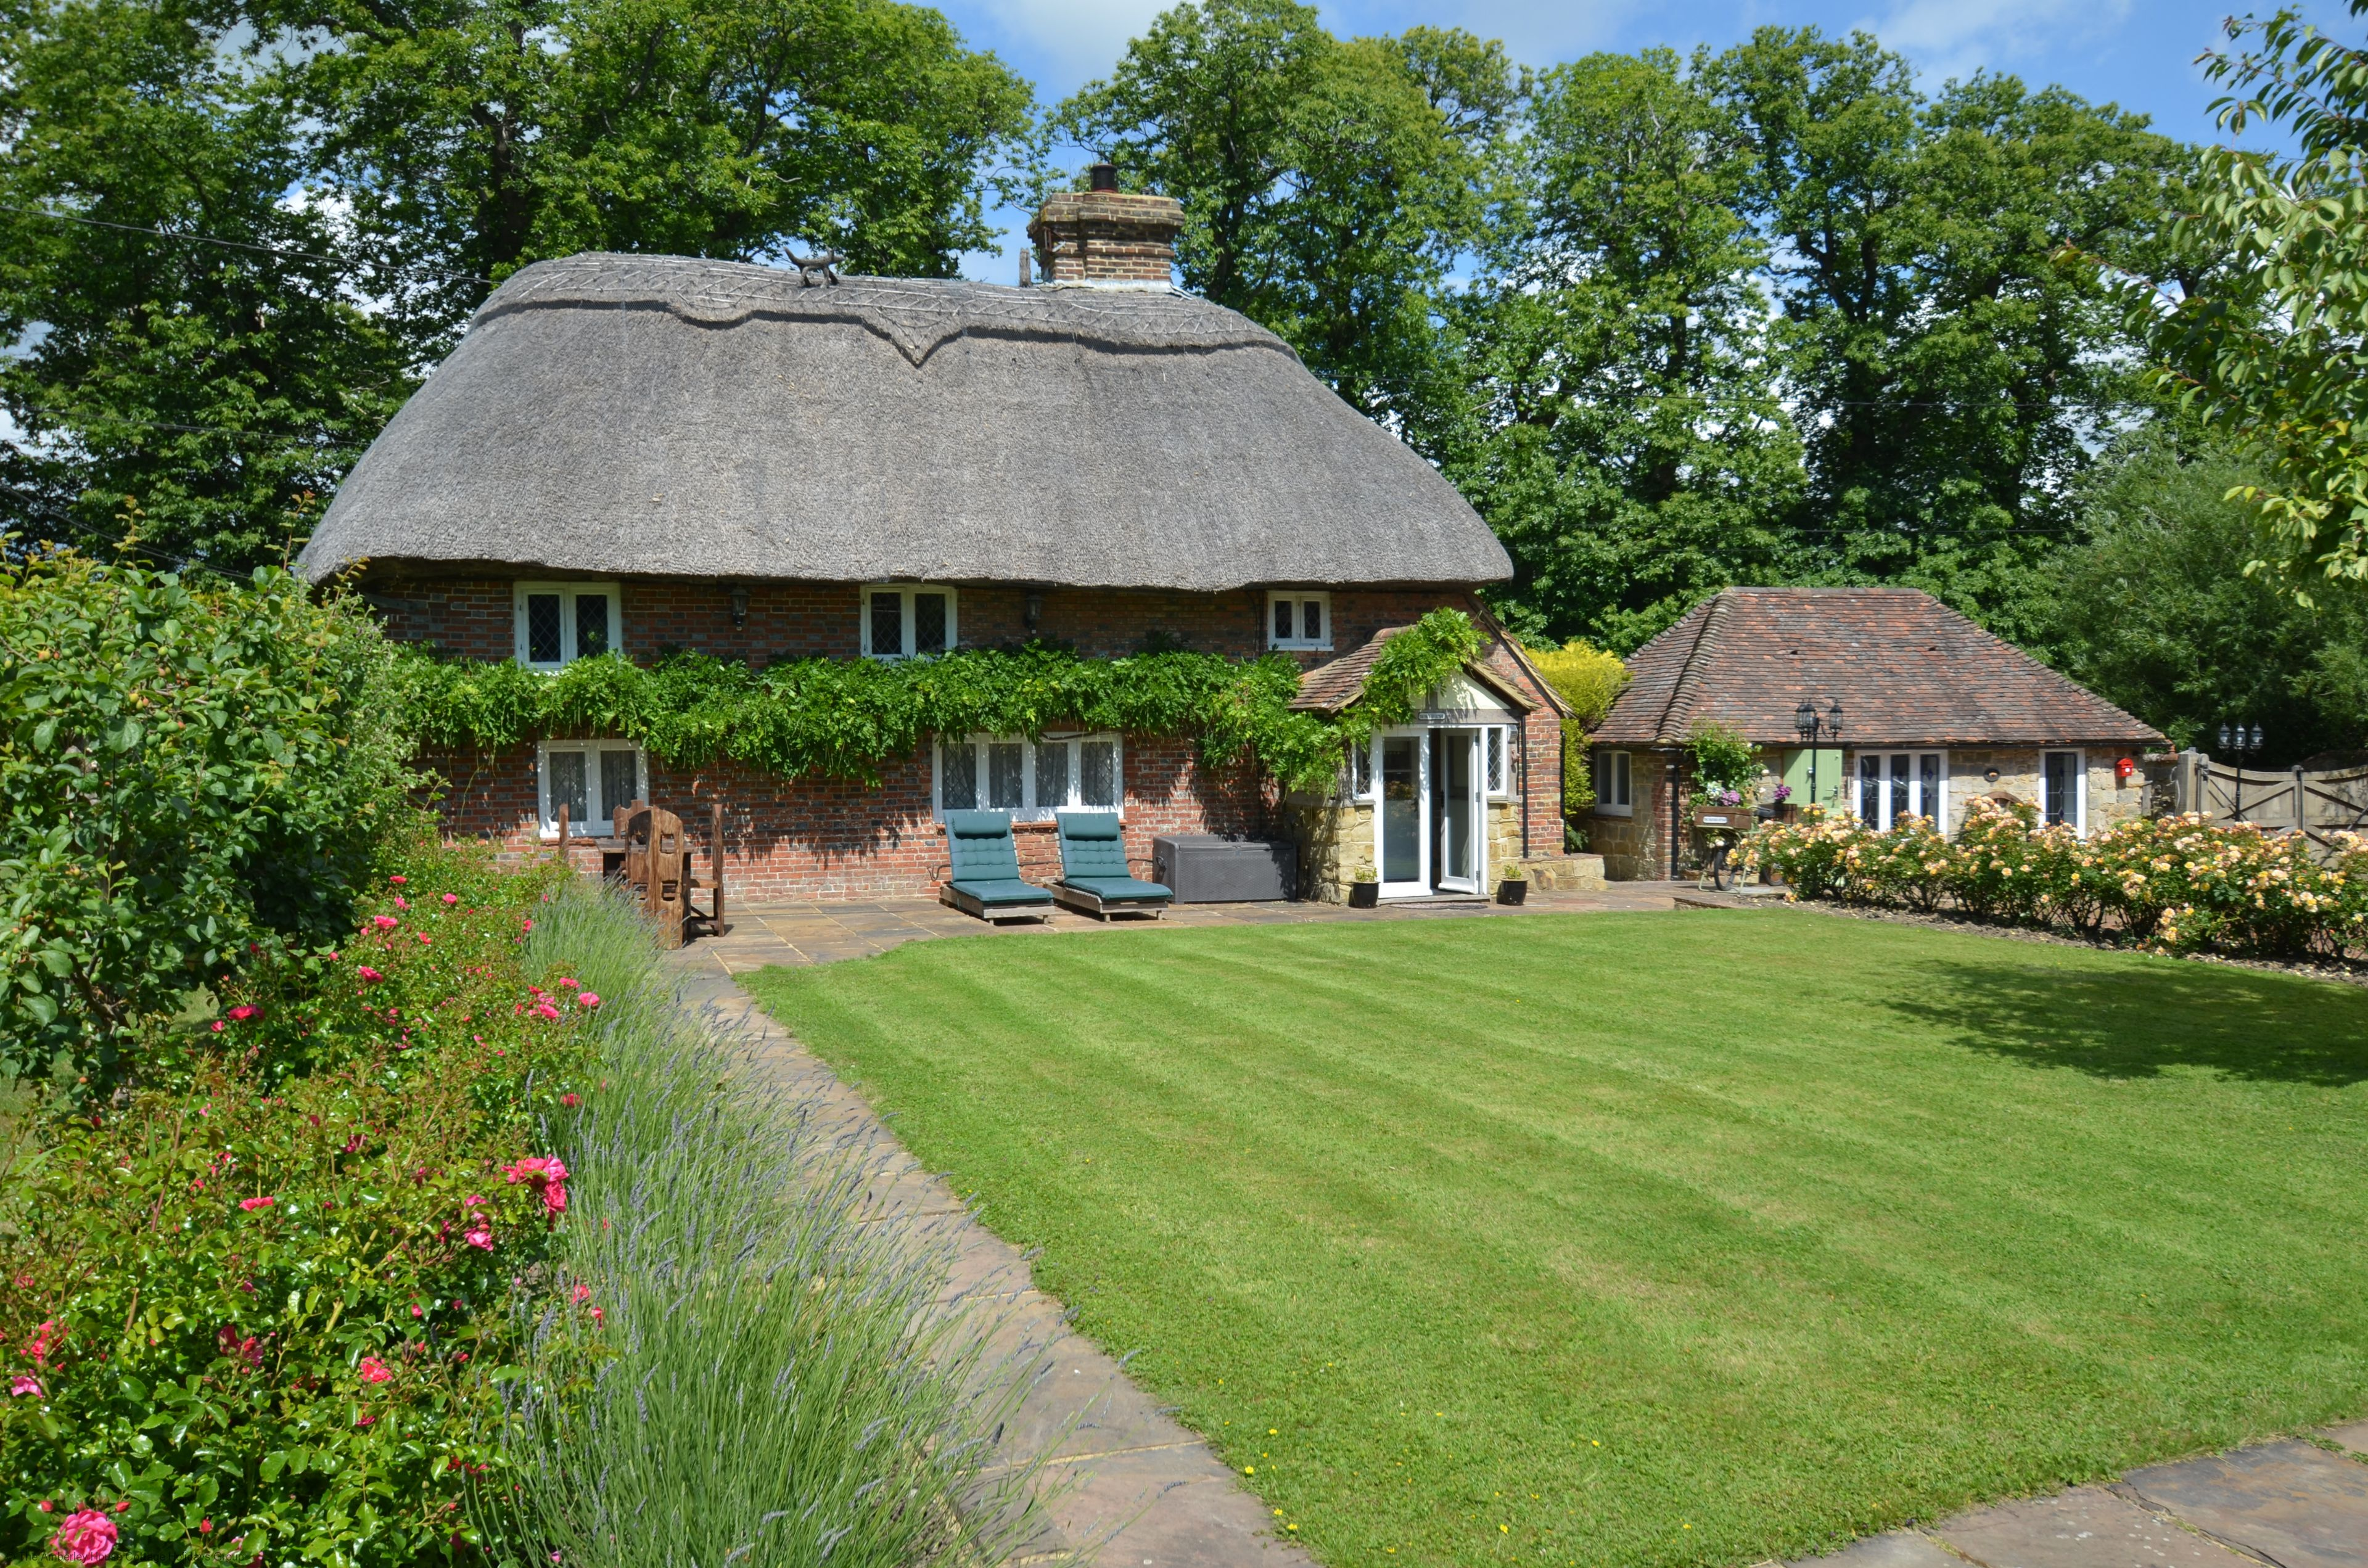 The Thatched Cottage and Piglet Lodge - Main Image